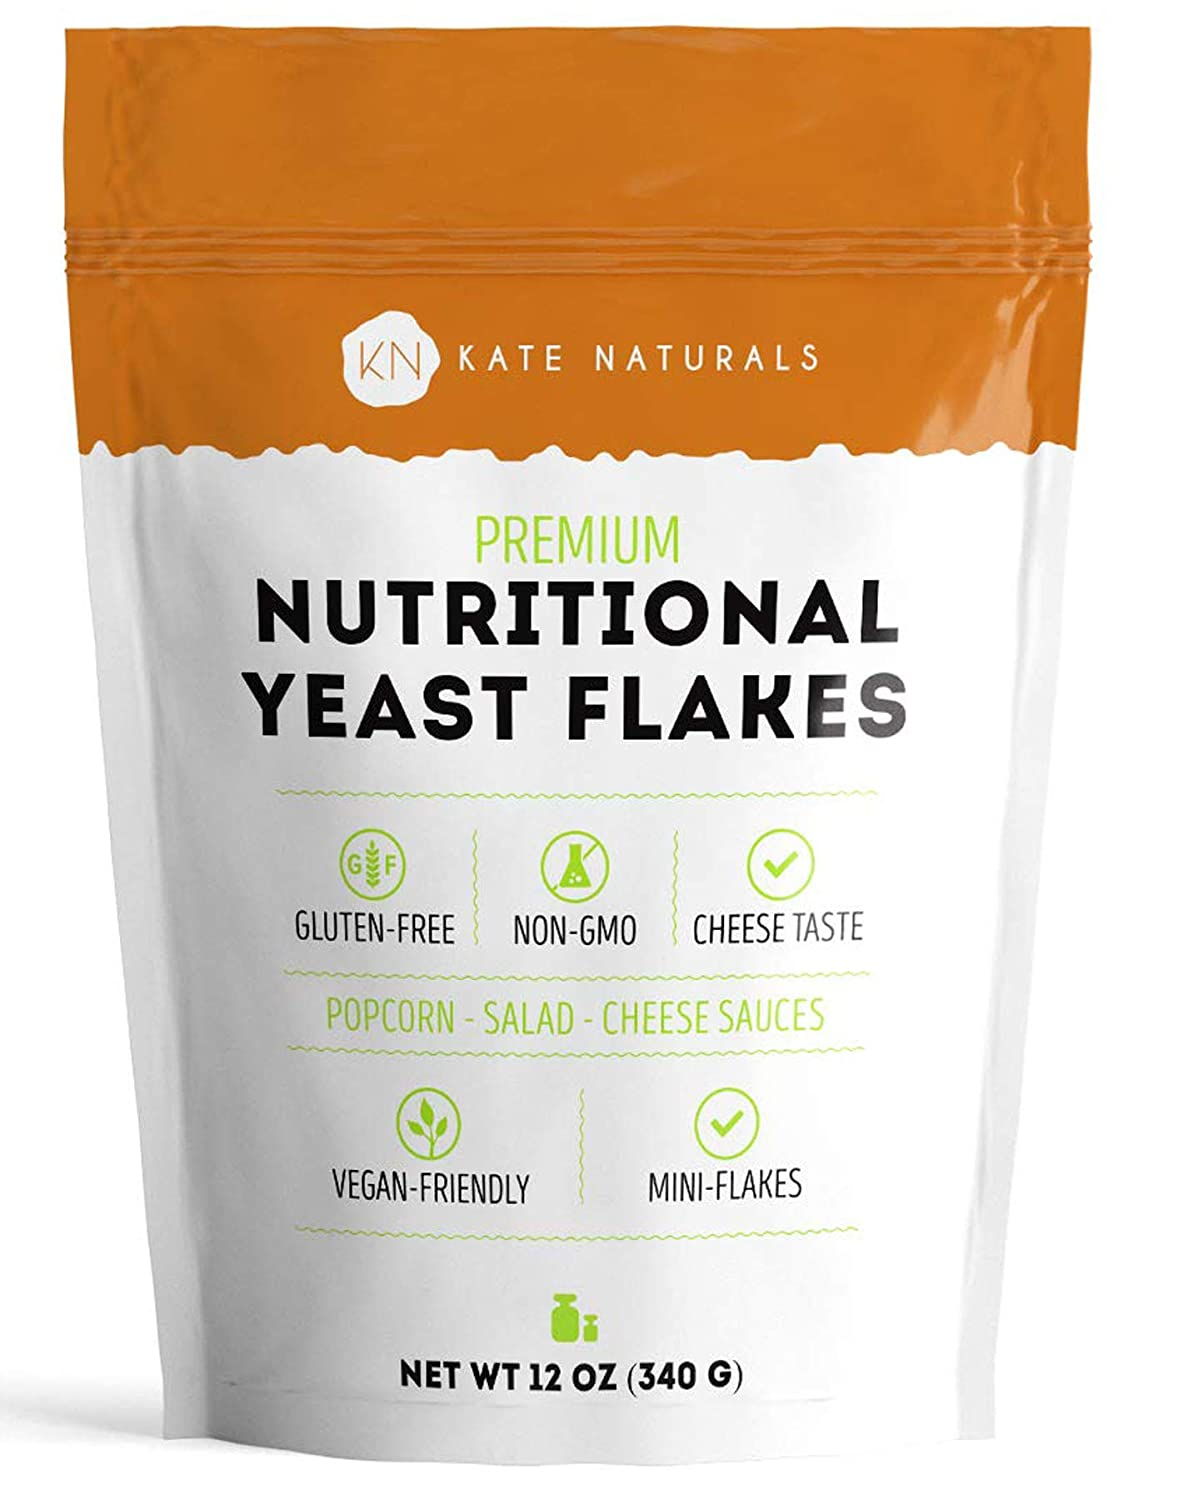 Premium Nutritional Yeast Flakes - Kate Naturals. Delicious Fortified Nooch for Vegans. Perfect for Mac & Cheese Sauce, Popcorn, Salad, Pizza. Gluten-Free & Non-GMO. Large Resealable Bag (12oz)